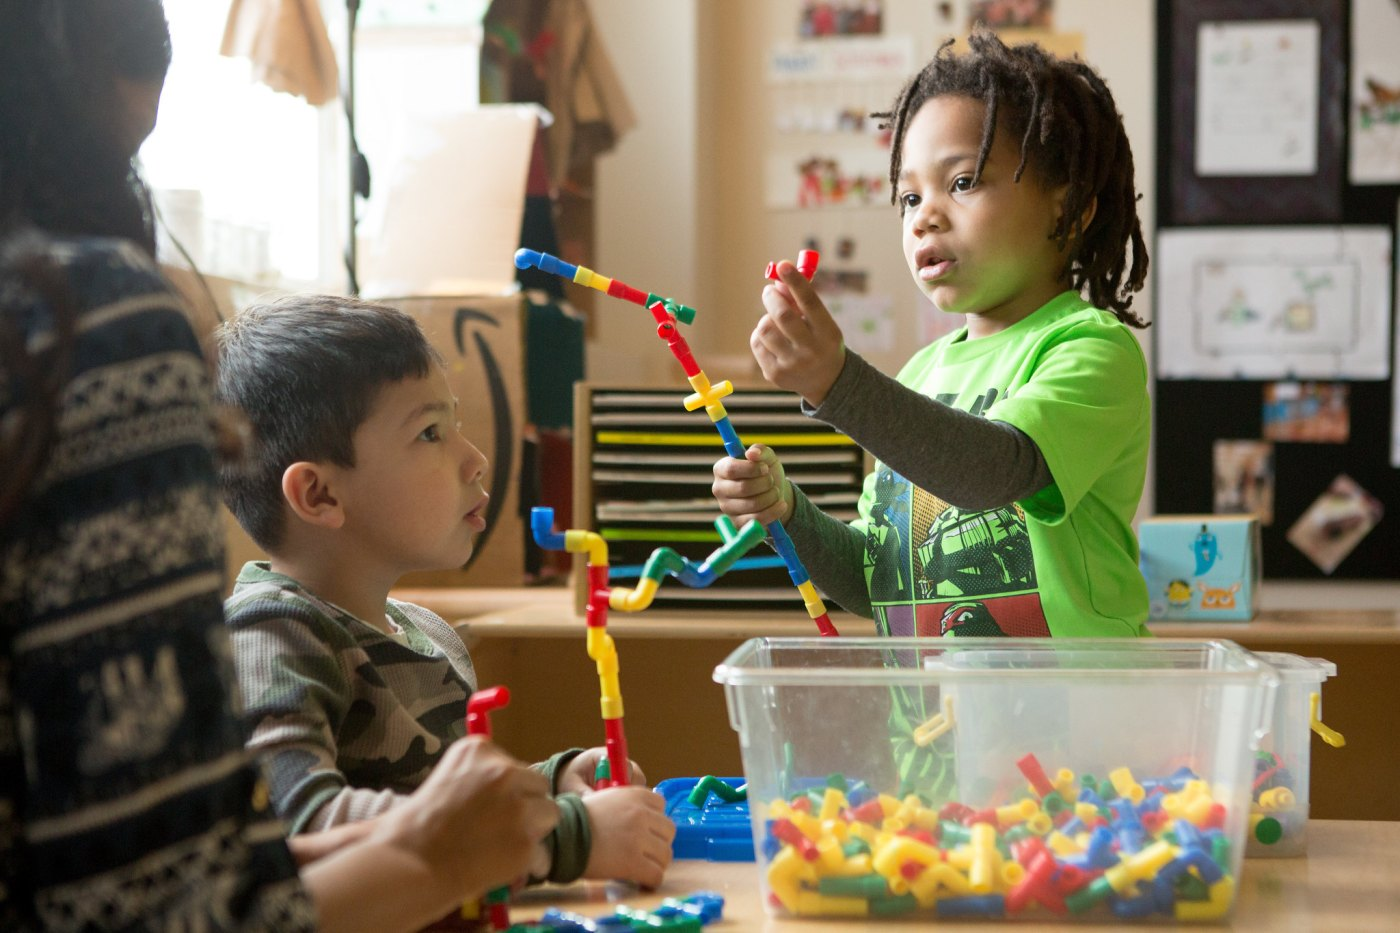 Preschool students build a structure with various interlocking pieces.